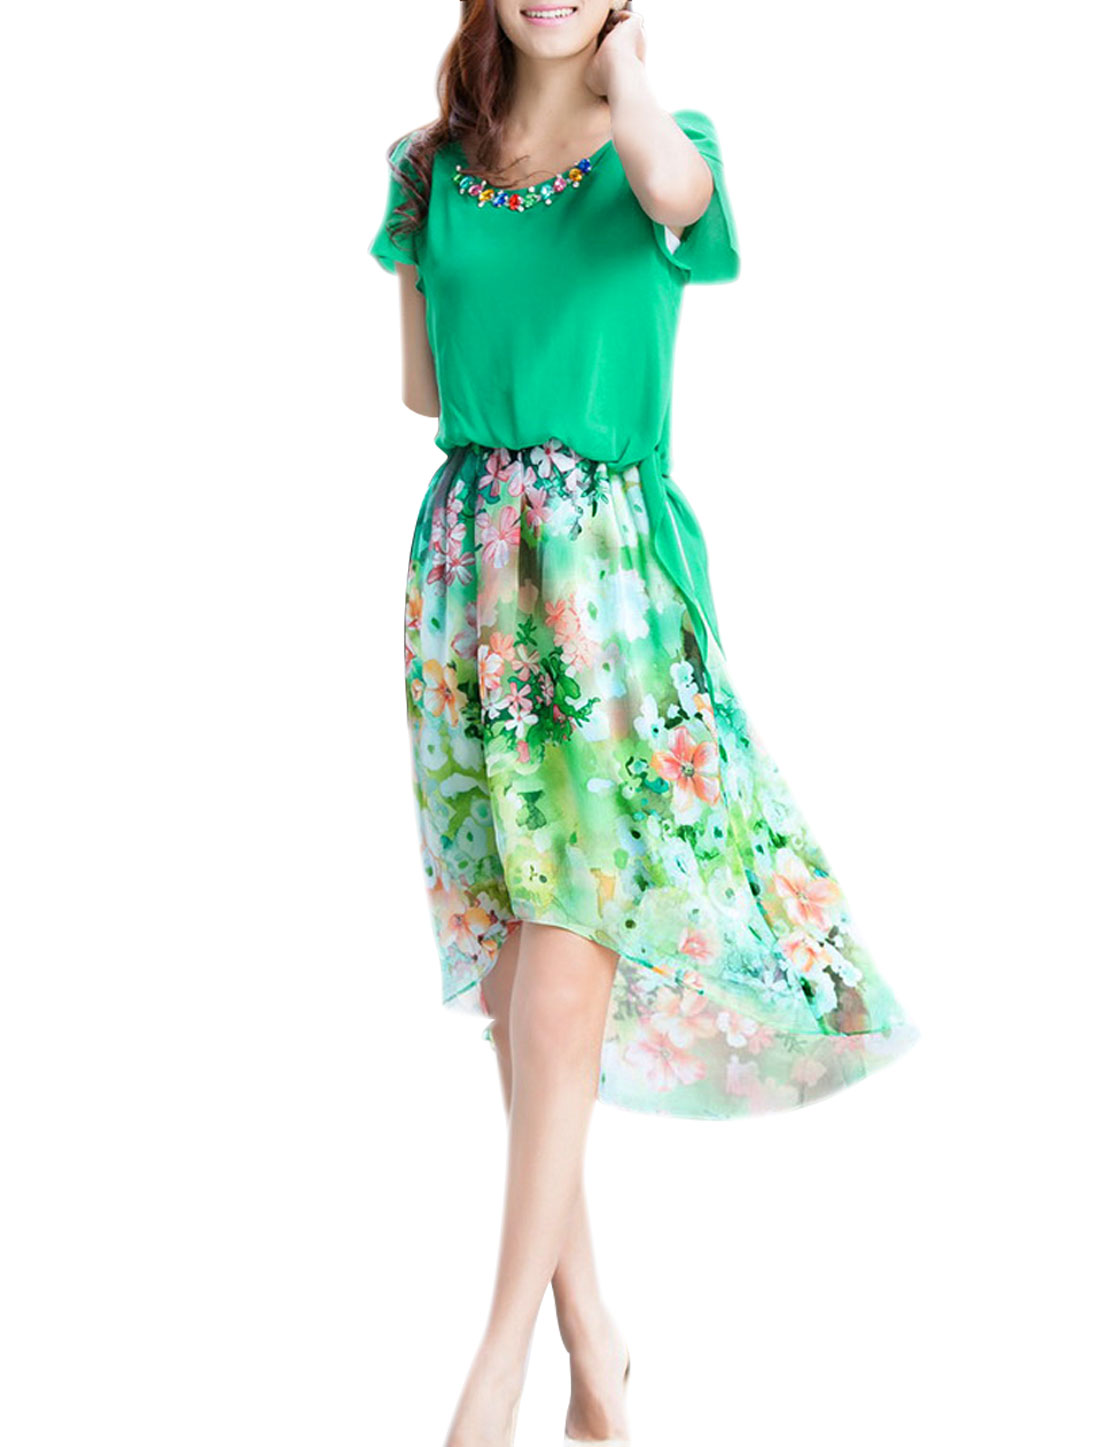 Lady Summer Puff Sleeve Semi-sheer Flower Prints Green Above Knee Dress XS